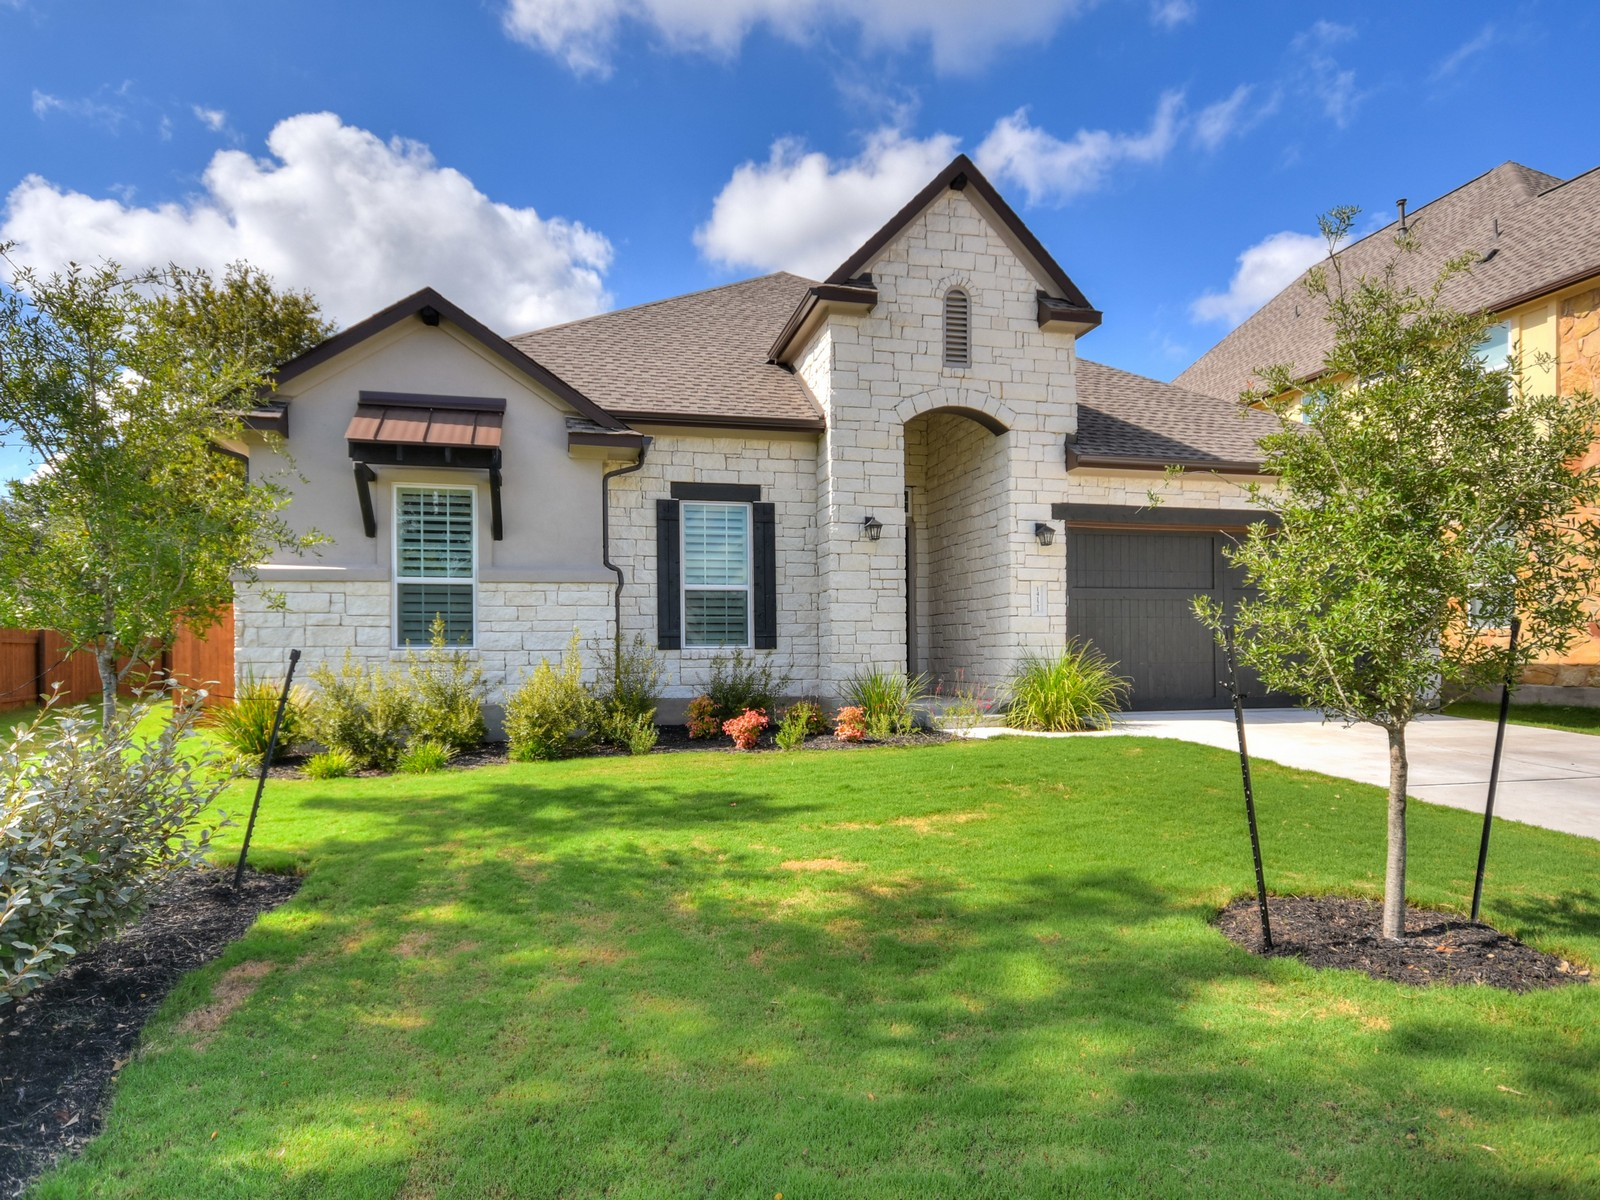 Additional photo for property listing at Avery Ranch Single Story 14121 Genesee Trl Austin, Texas 78717 United States